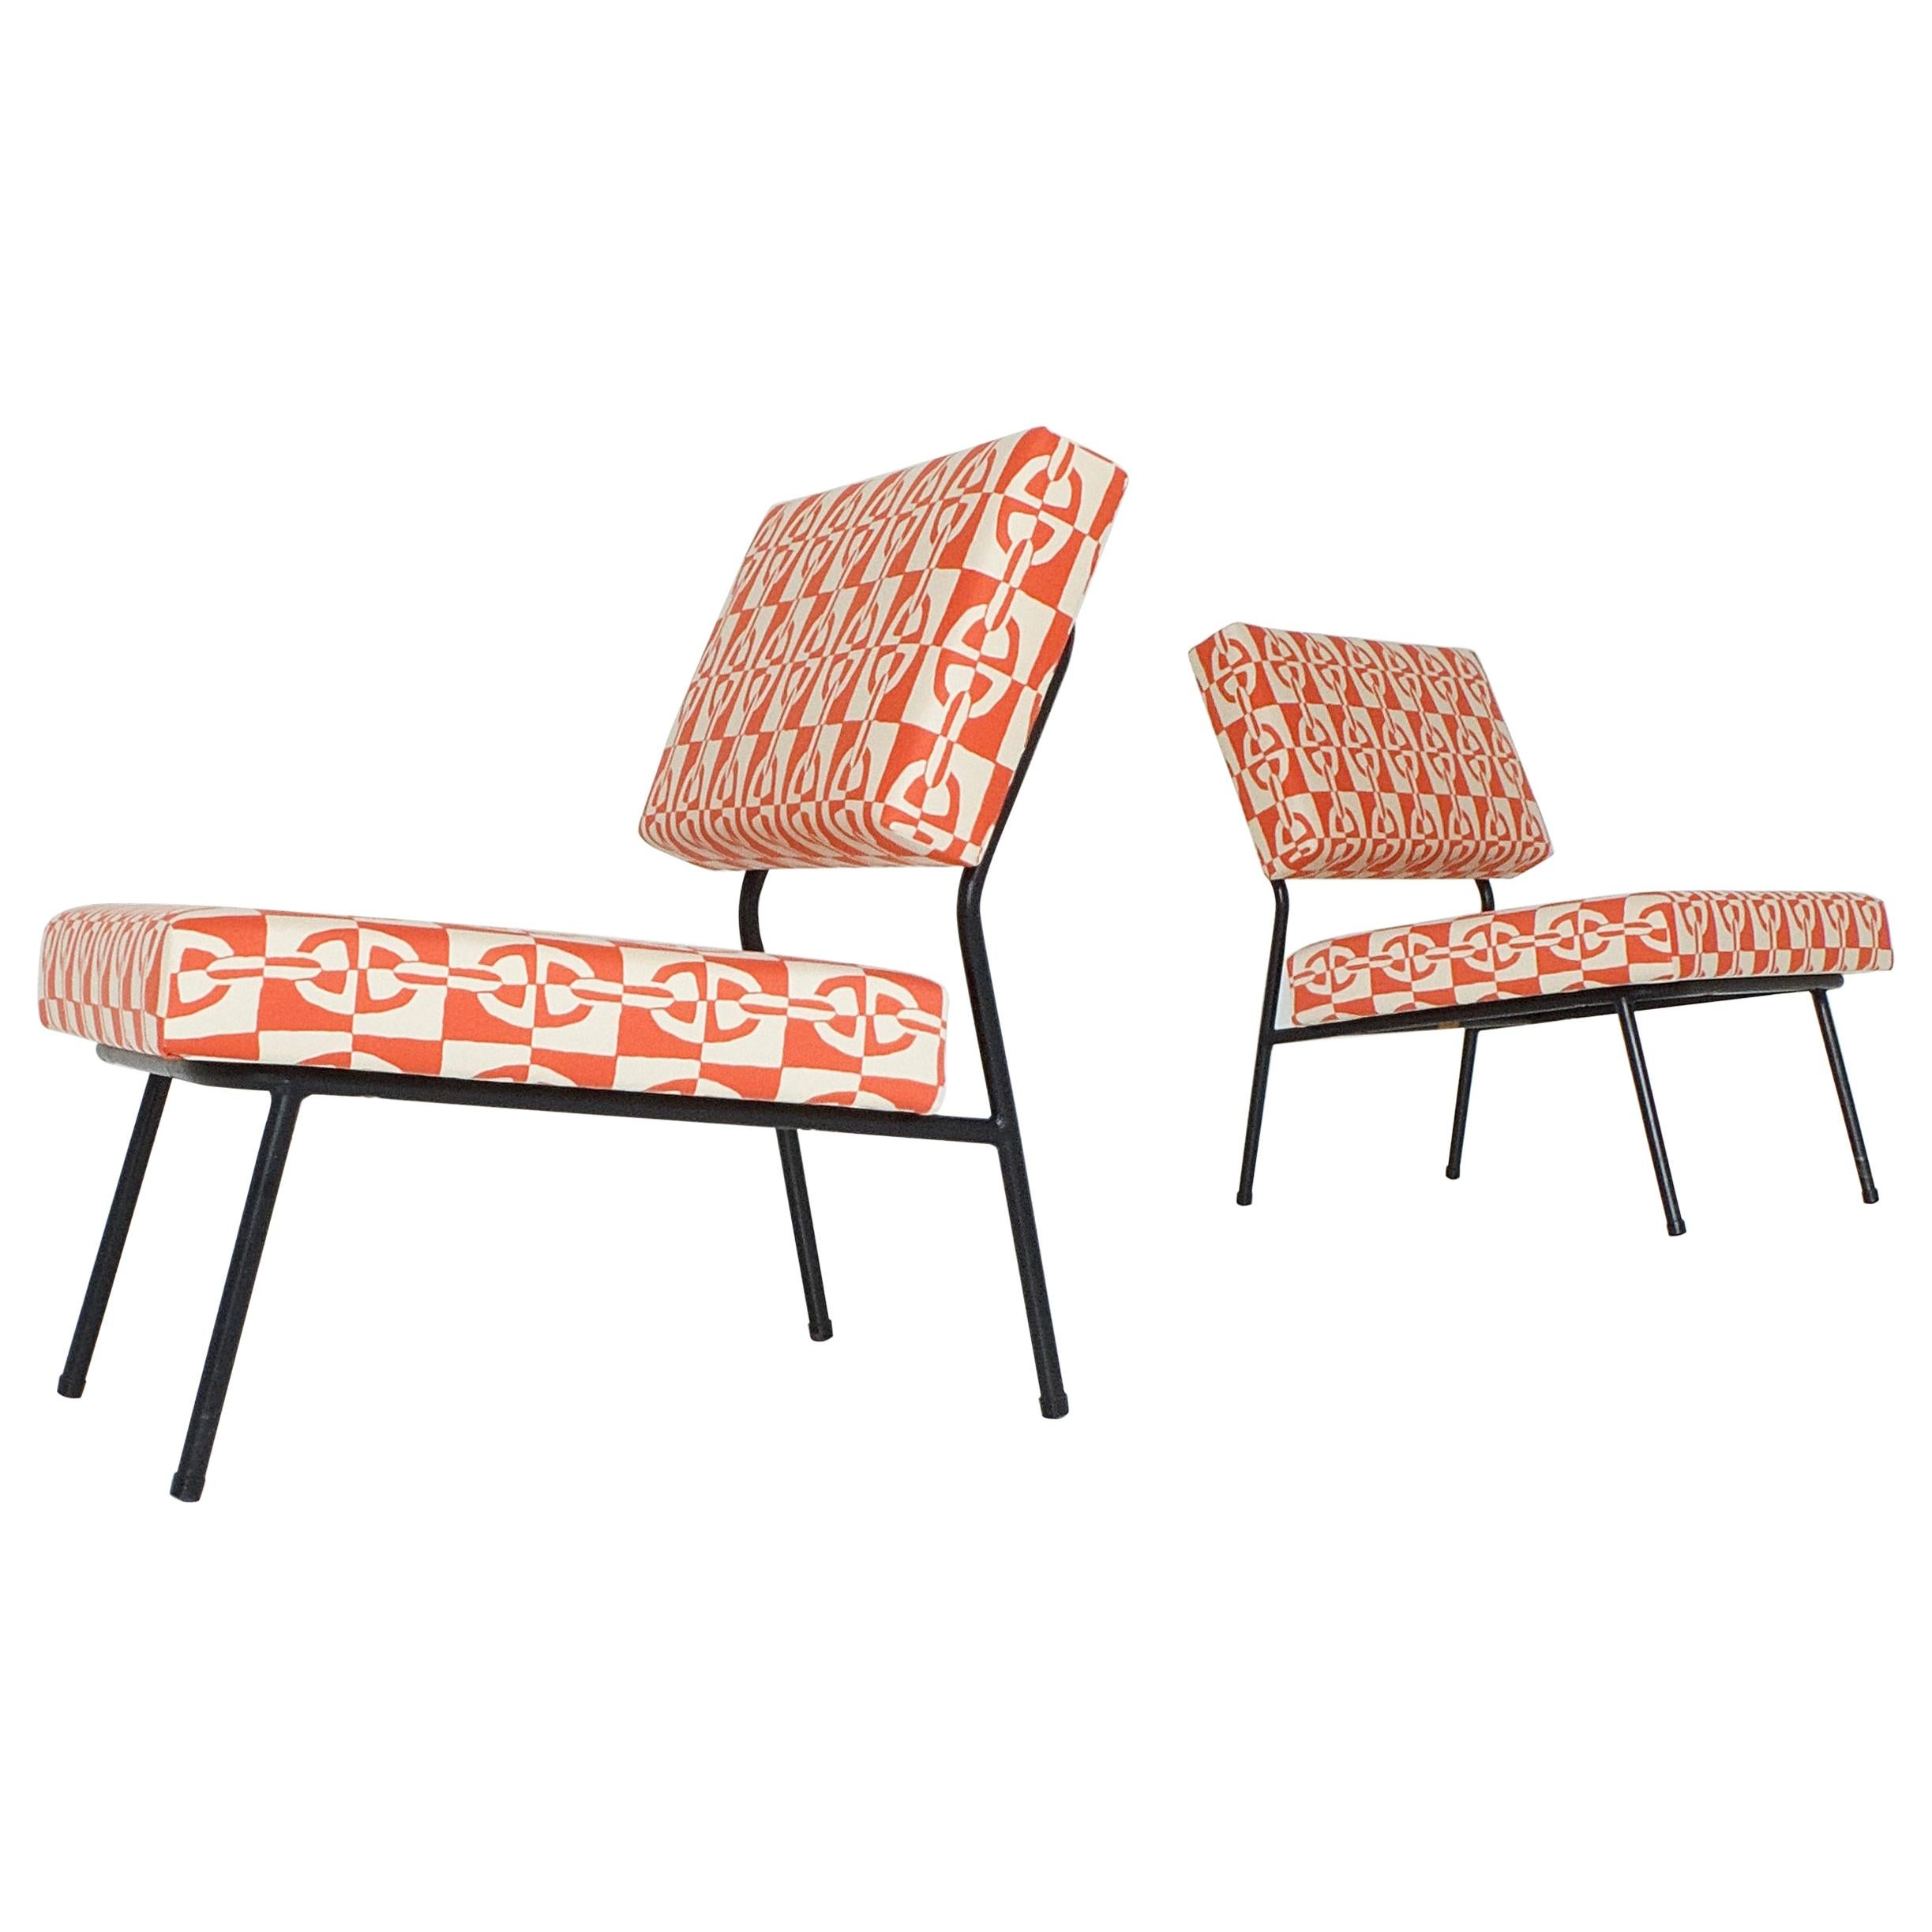 Pair of Easy Chairs by Paul Geoffroy for Airborne, with Hermès Fabrics, 1950s